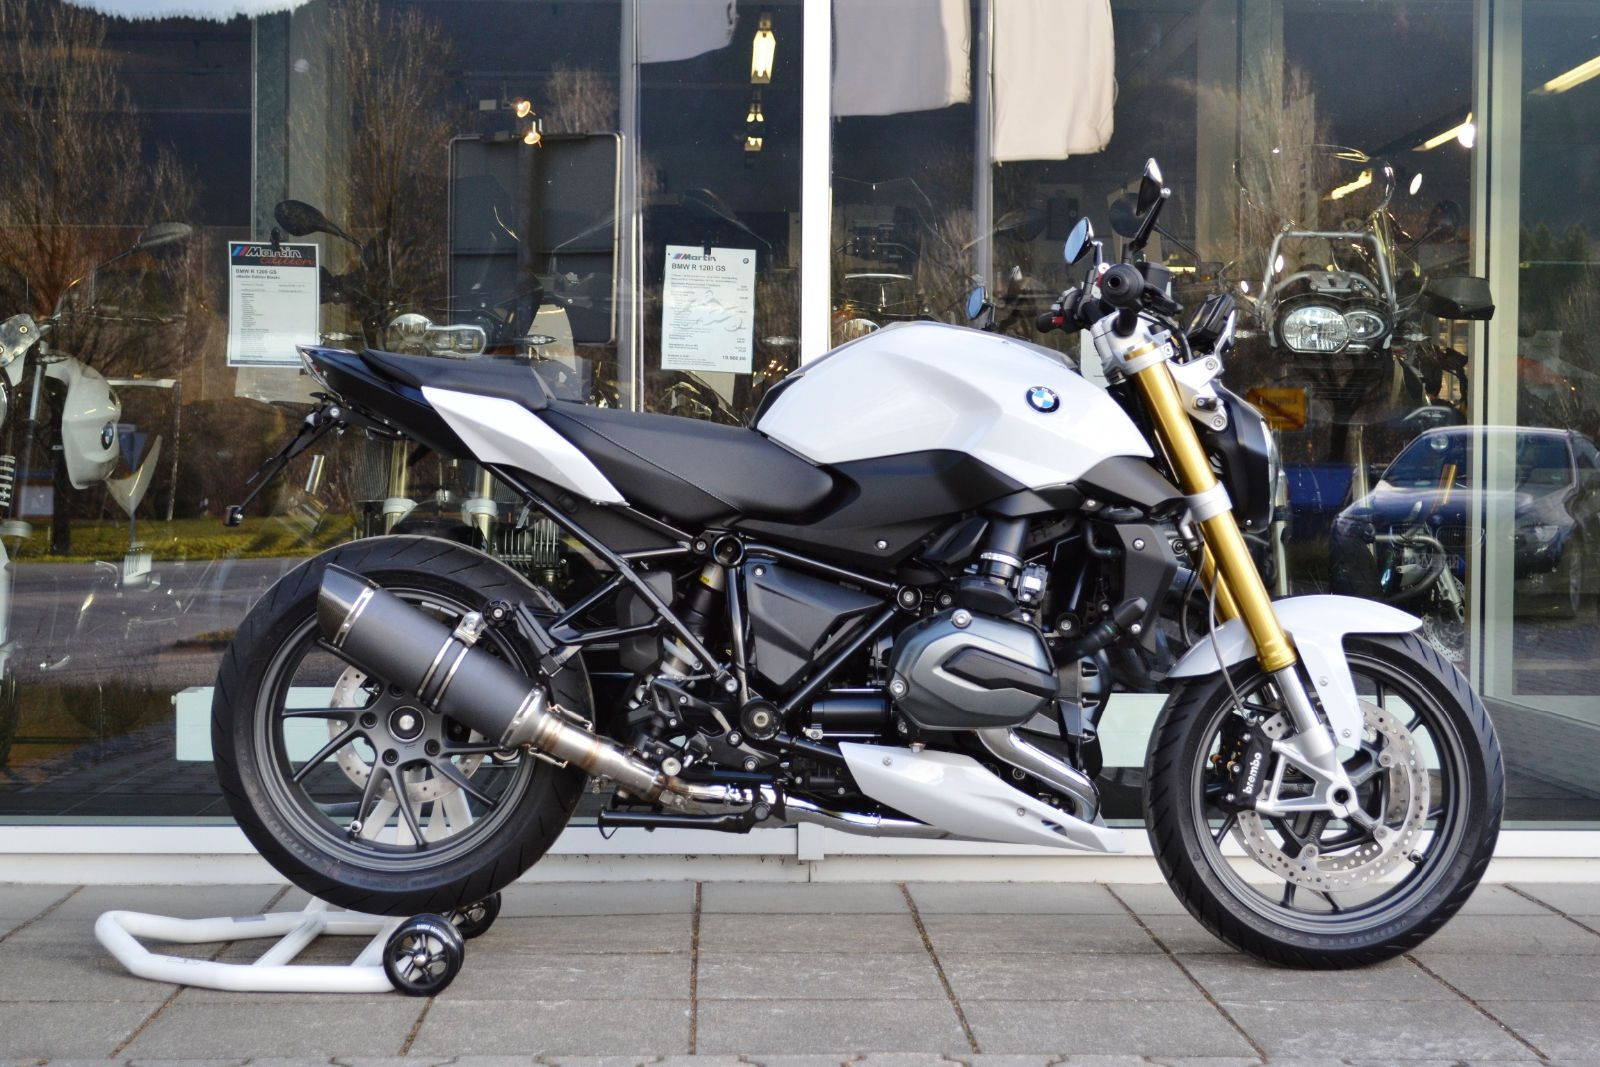 bmw r1200r lc martin edition bmw r1200r voiture motos. Black Bedroom Furniture Sets. Home Design Ideas